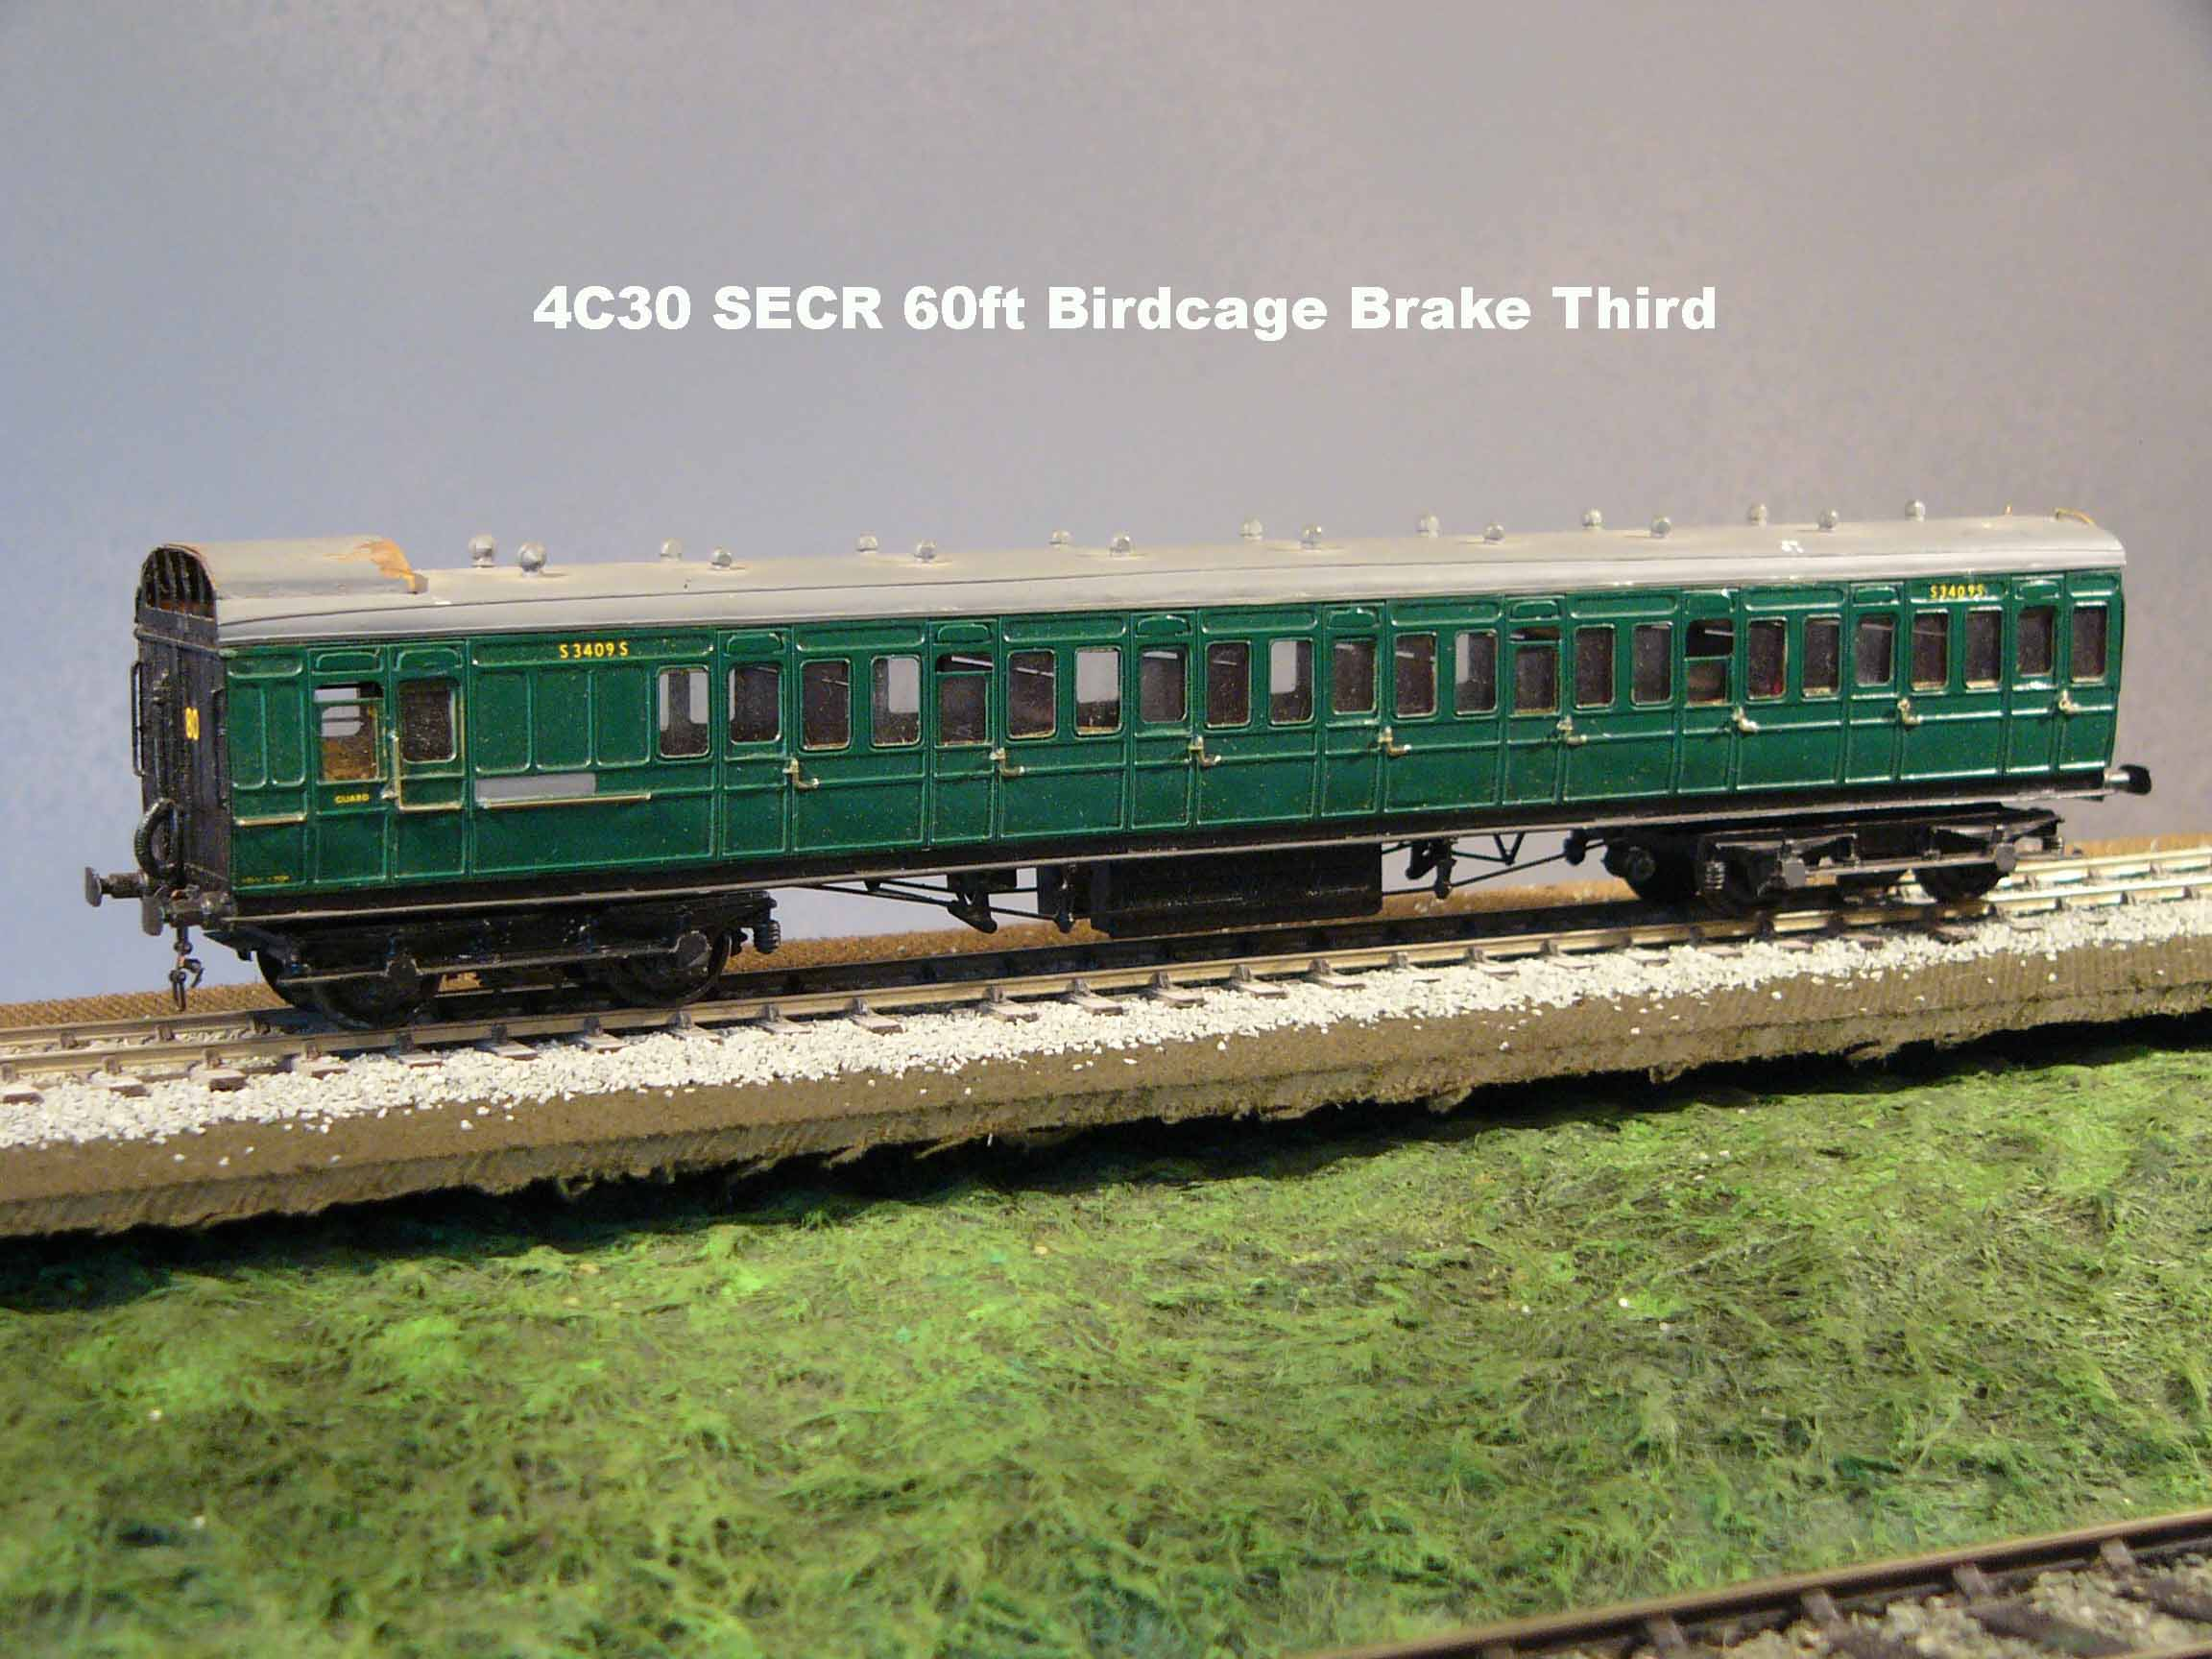 7C30 SECR 60ft Birdcage Brake Third